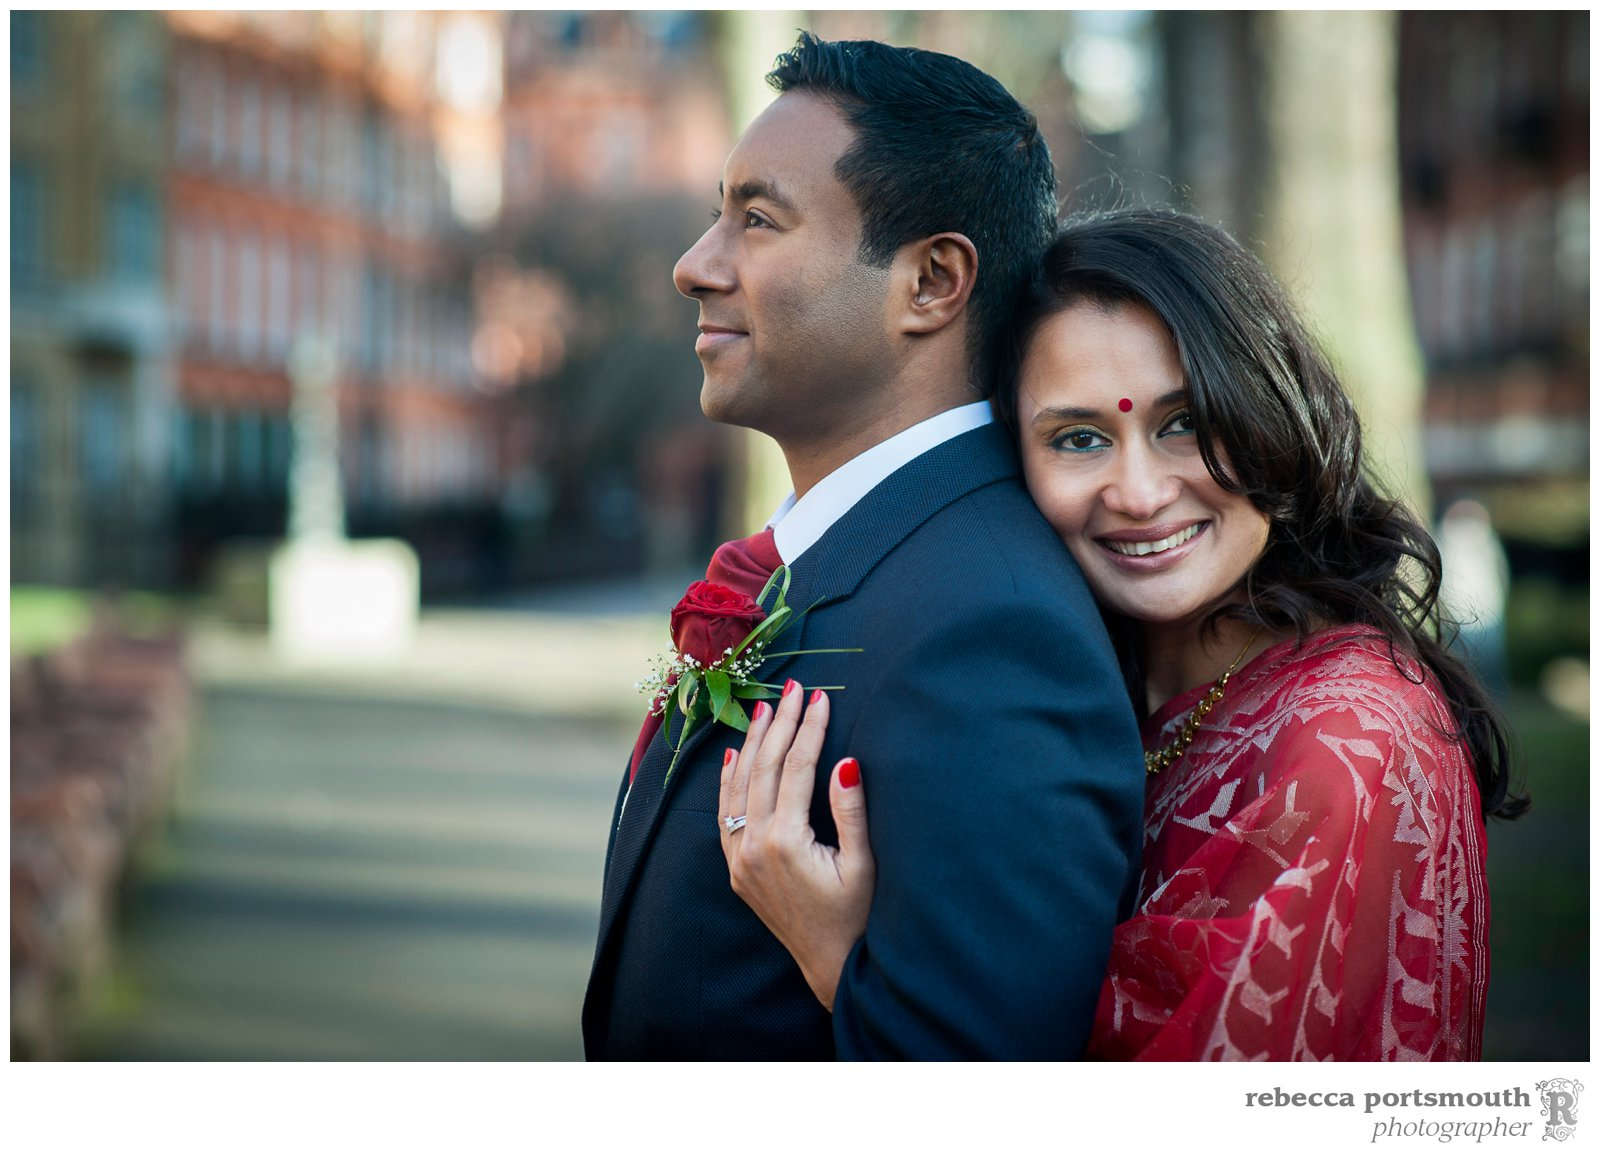 The Mount Street Gardens wedding photographs of Tas + Ravi after their Mayfair Library civil wedding ceremony.